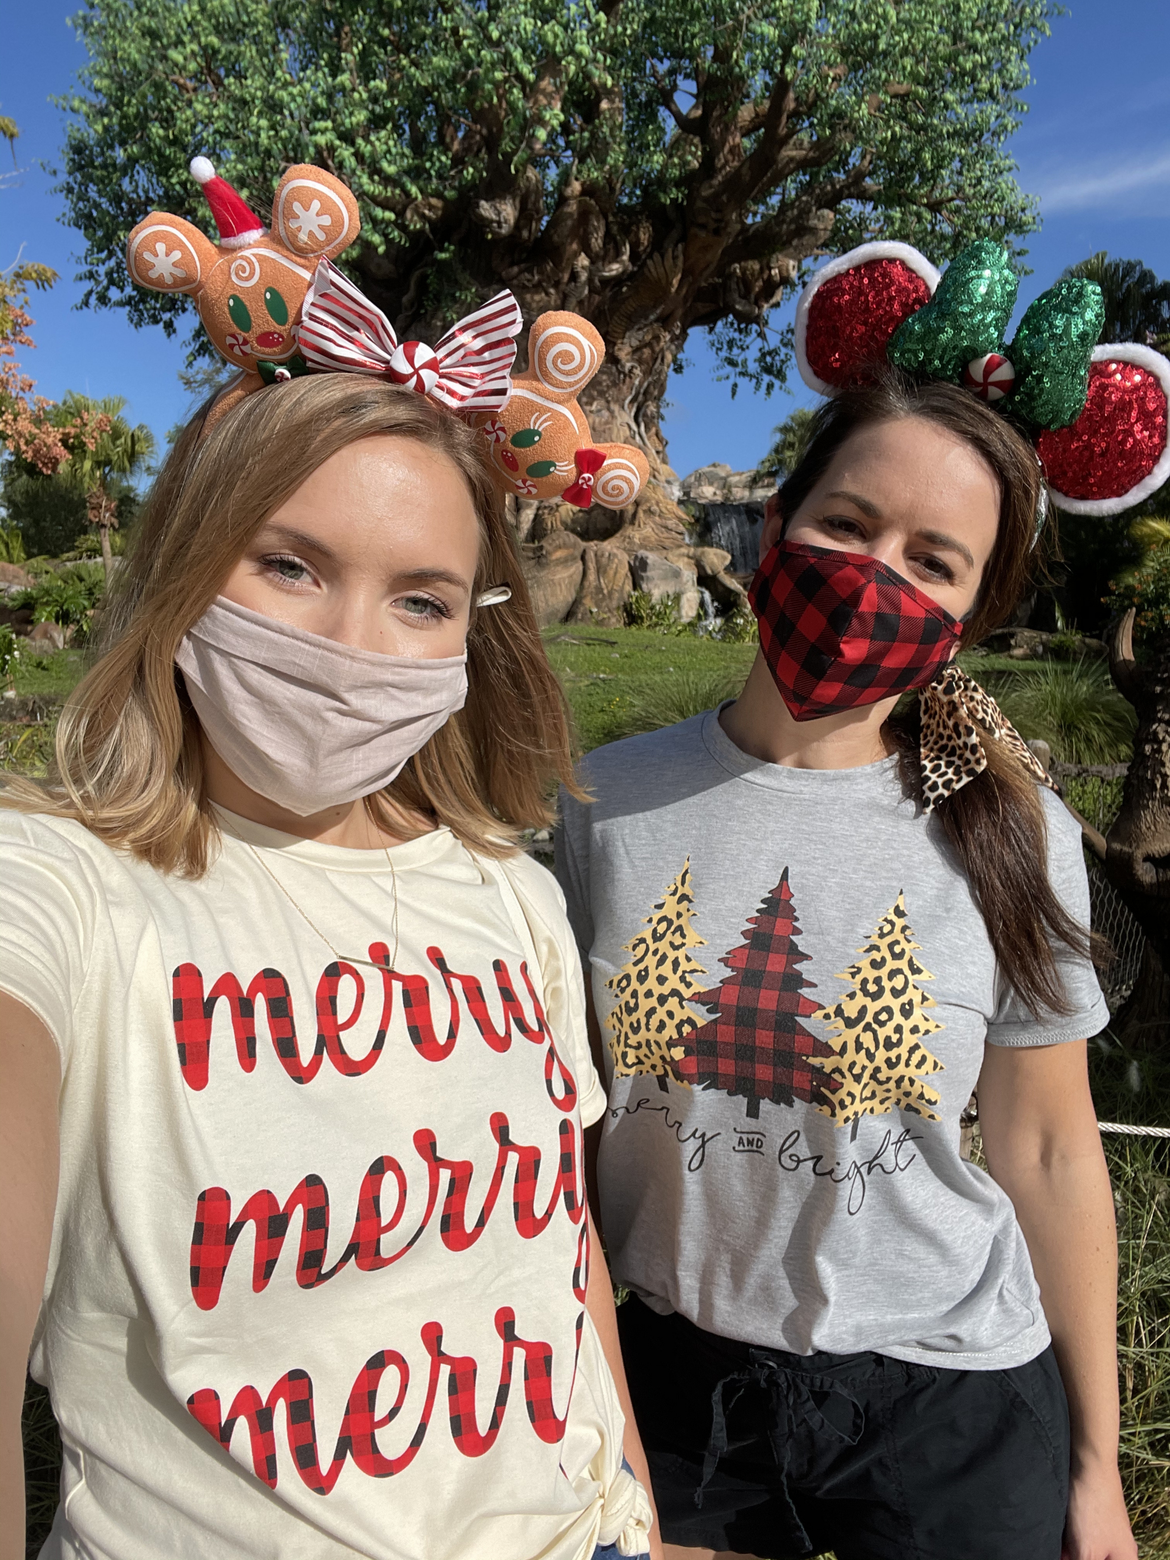 Author, Kelly Nelson (left), and Jenn C. Harmon (right) wear holiday inspired shirts and Minnie Mouse Ears within front of the Christmas Tree at Disney's Animal Kingdom Theme Park at Walt Disney World® Resort.